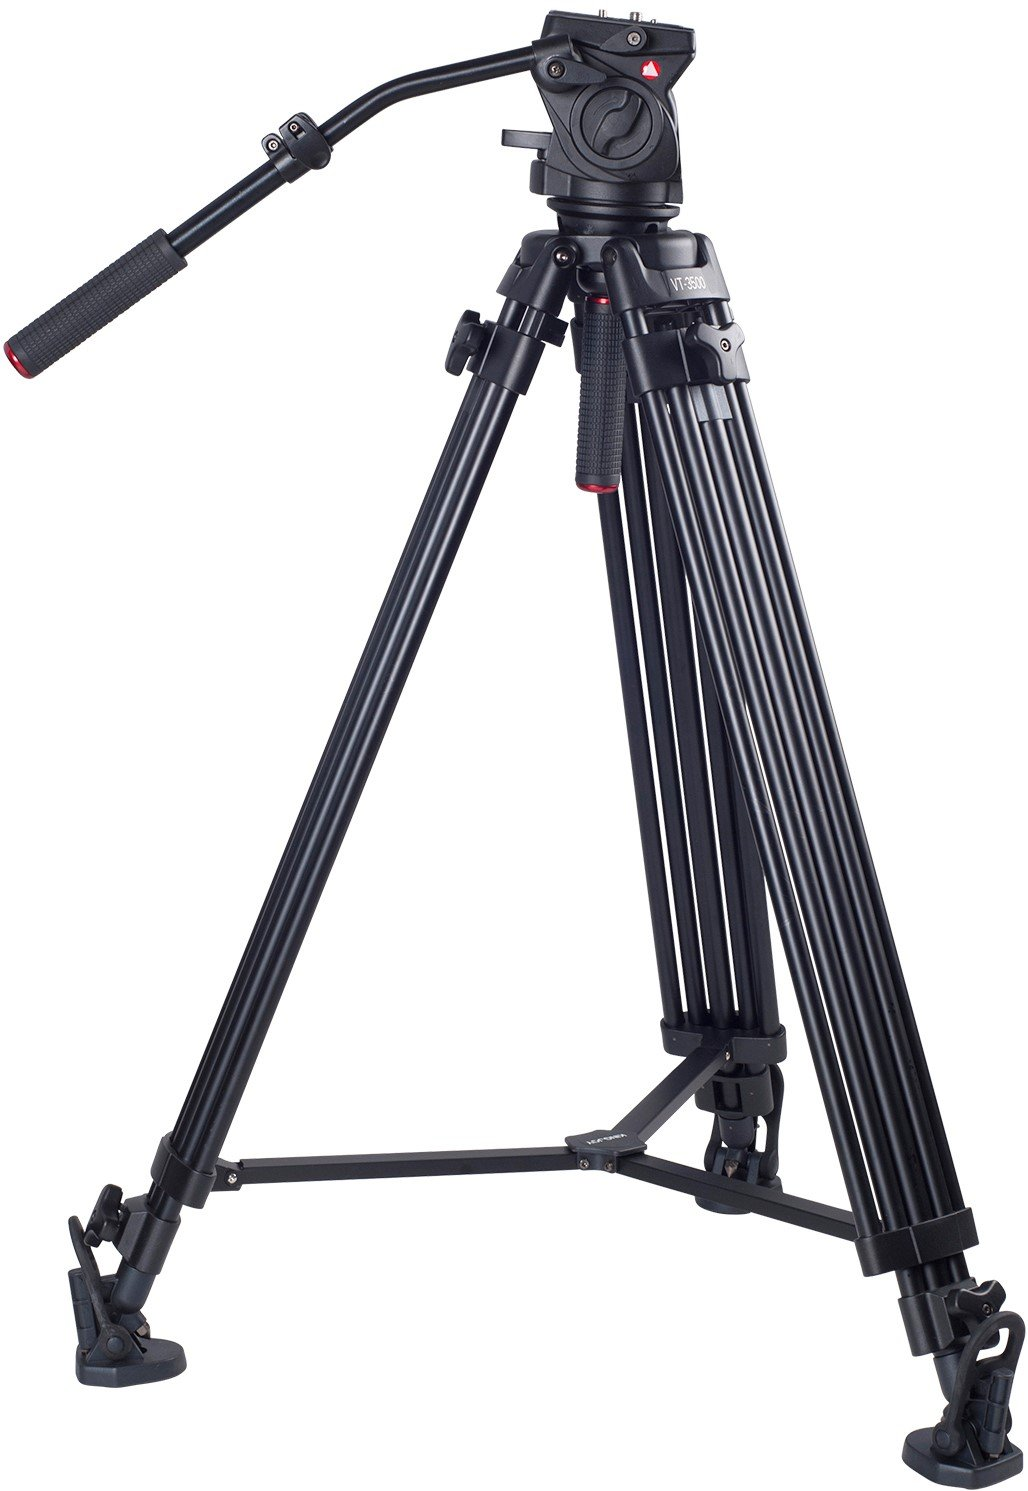 Kingjoy Professional Video Tripod, Heavy Duty Tripod System with 360-Degree Panoramic Fluid Head, Max Height 79 Inches, Load up to 44 LBS for DSLR Camcorder Video Shooting Photography.